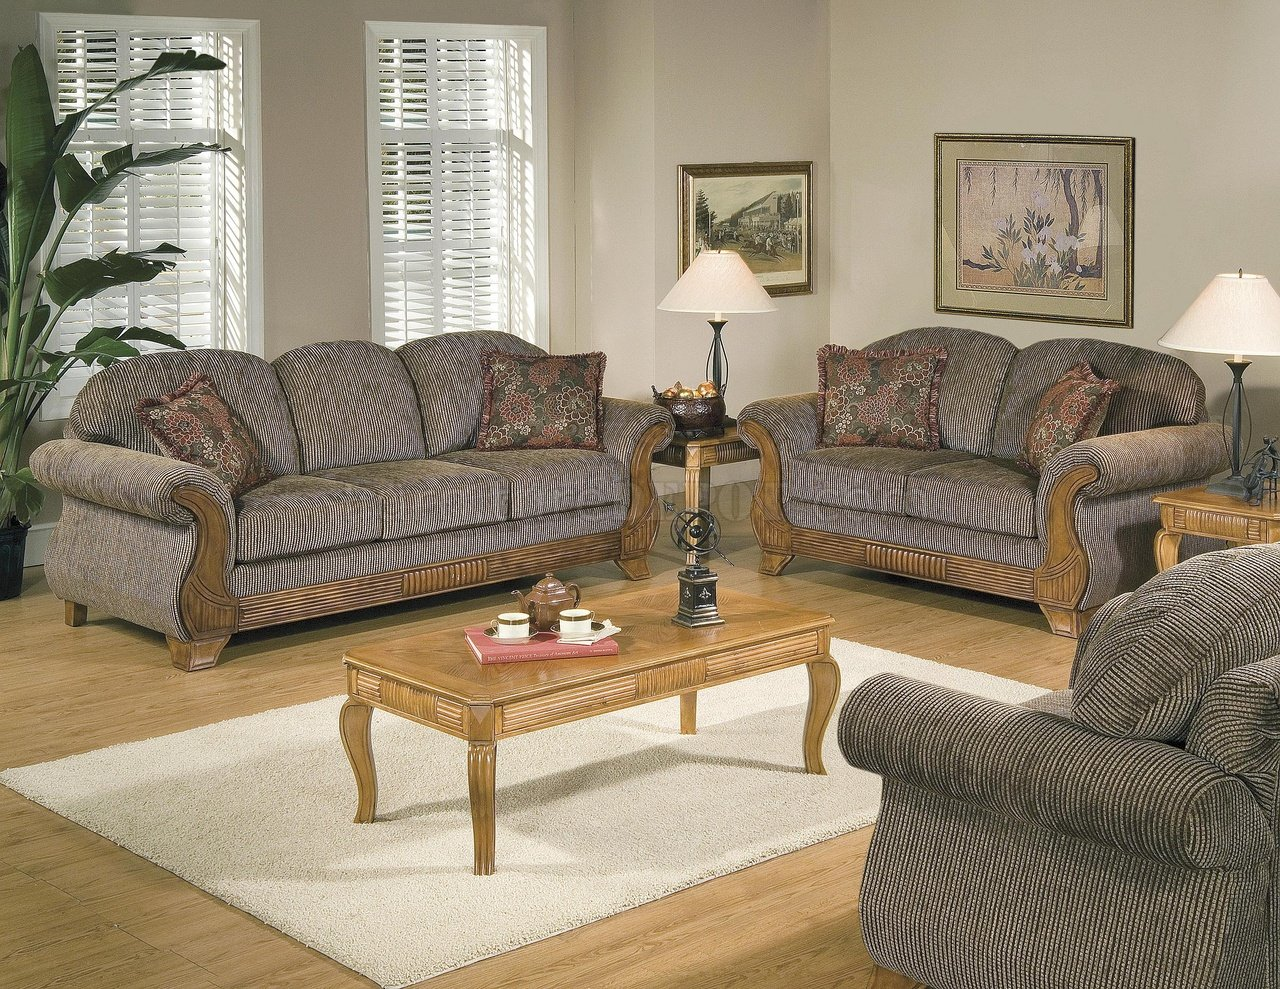 Living room furniture wood trim chenille sofa couch set living room